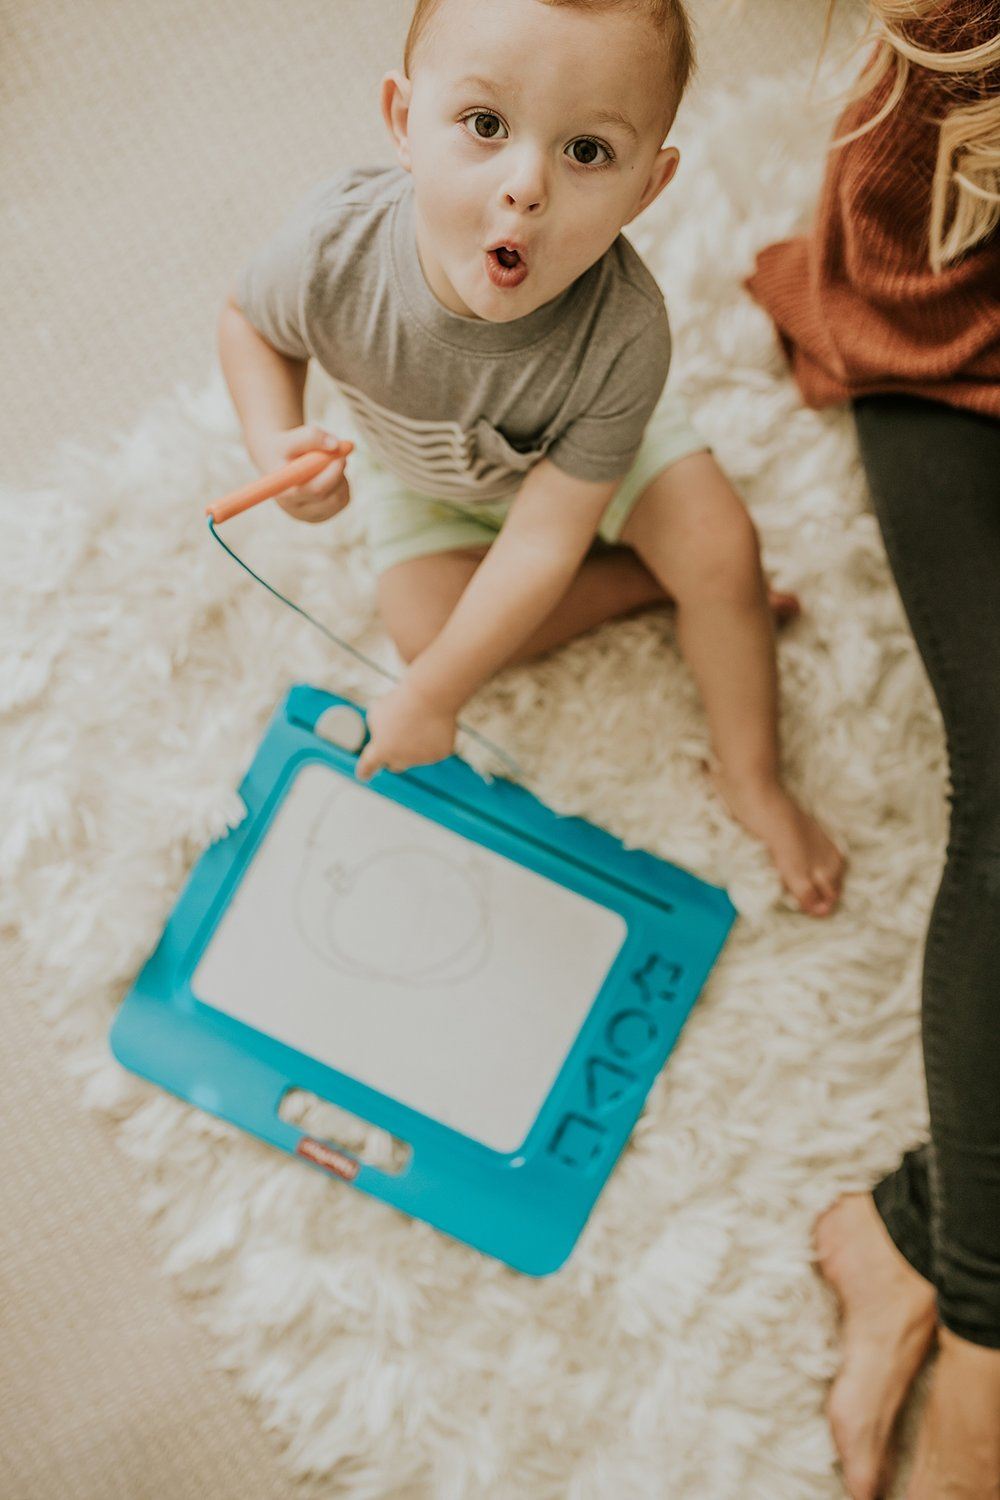 Orange County family photographer. Photo of toddler as he looks up surprised at the camera during in-home newborn session with Krystil McDowall Photography